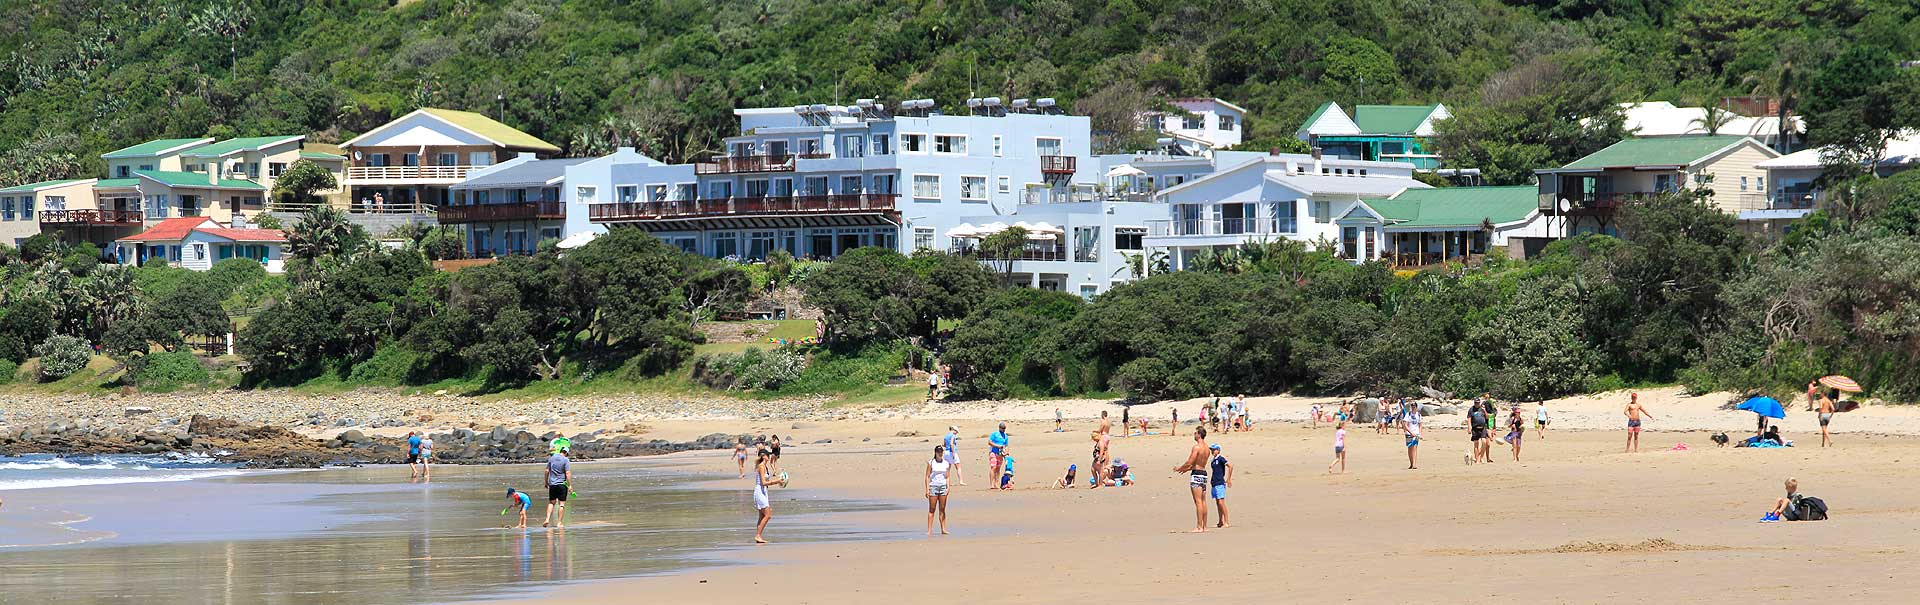 Discover Why The Morgan Bay Hotel Is Fast Becoming One Of South Africa S Favourite Family Holiday Destinations